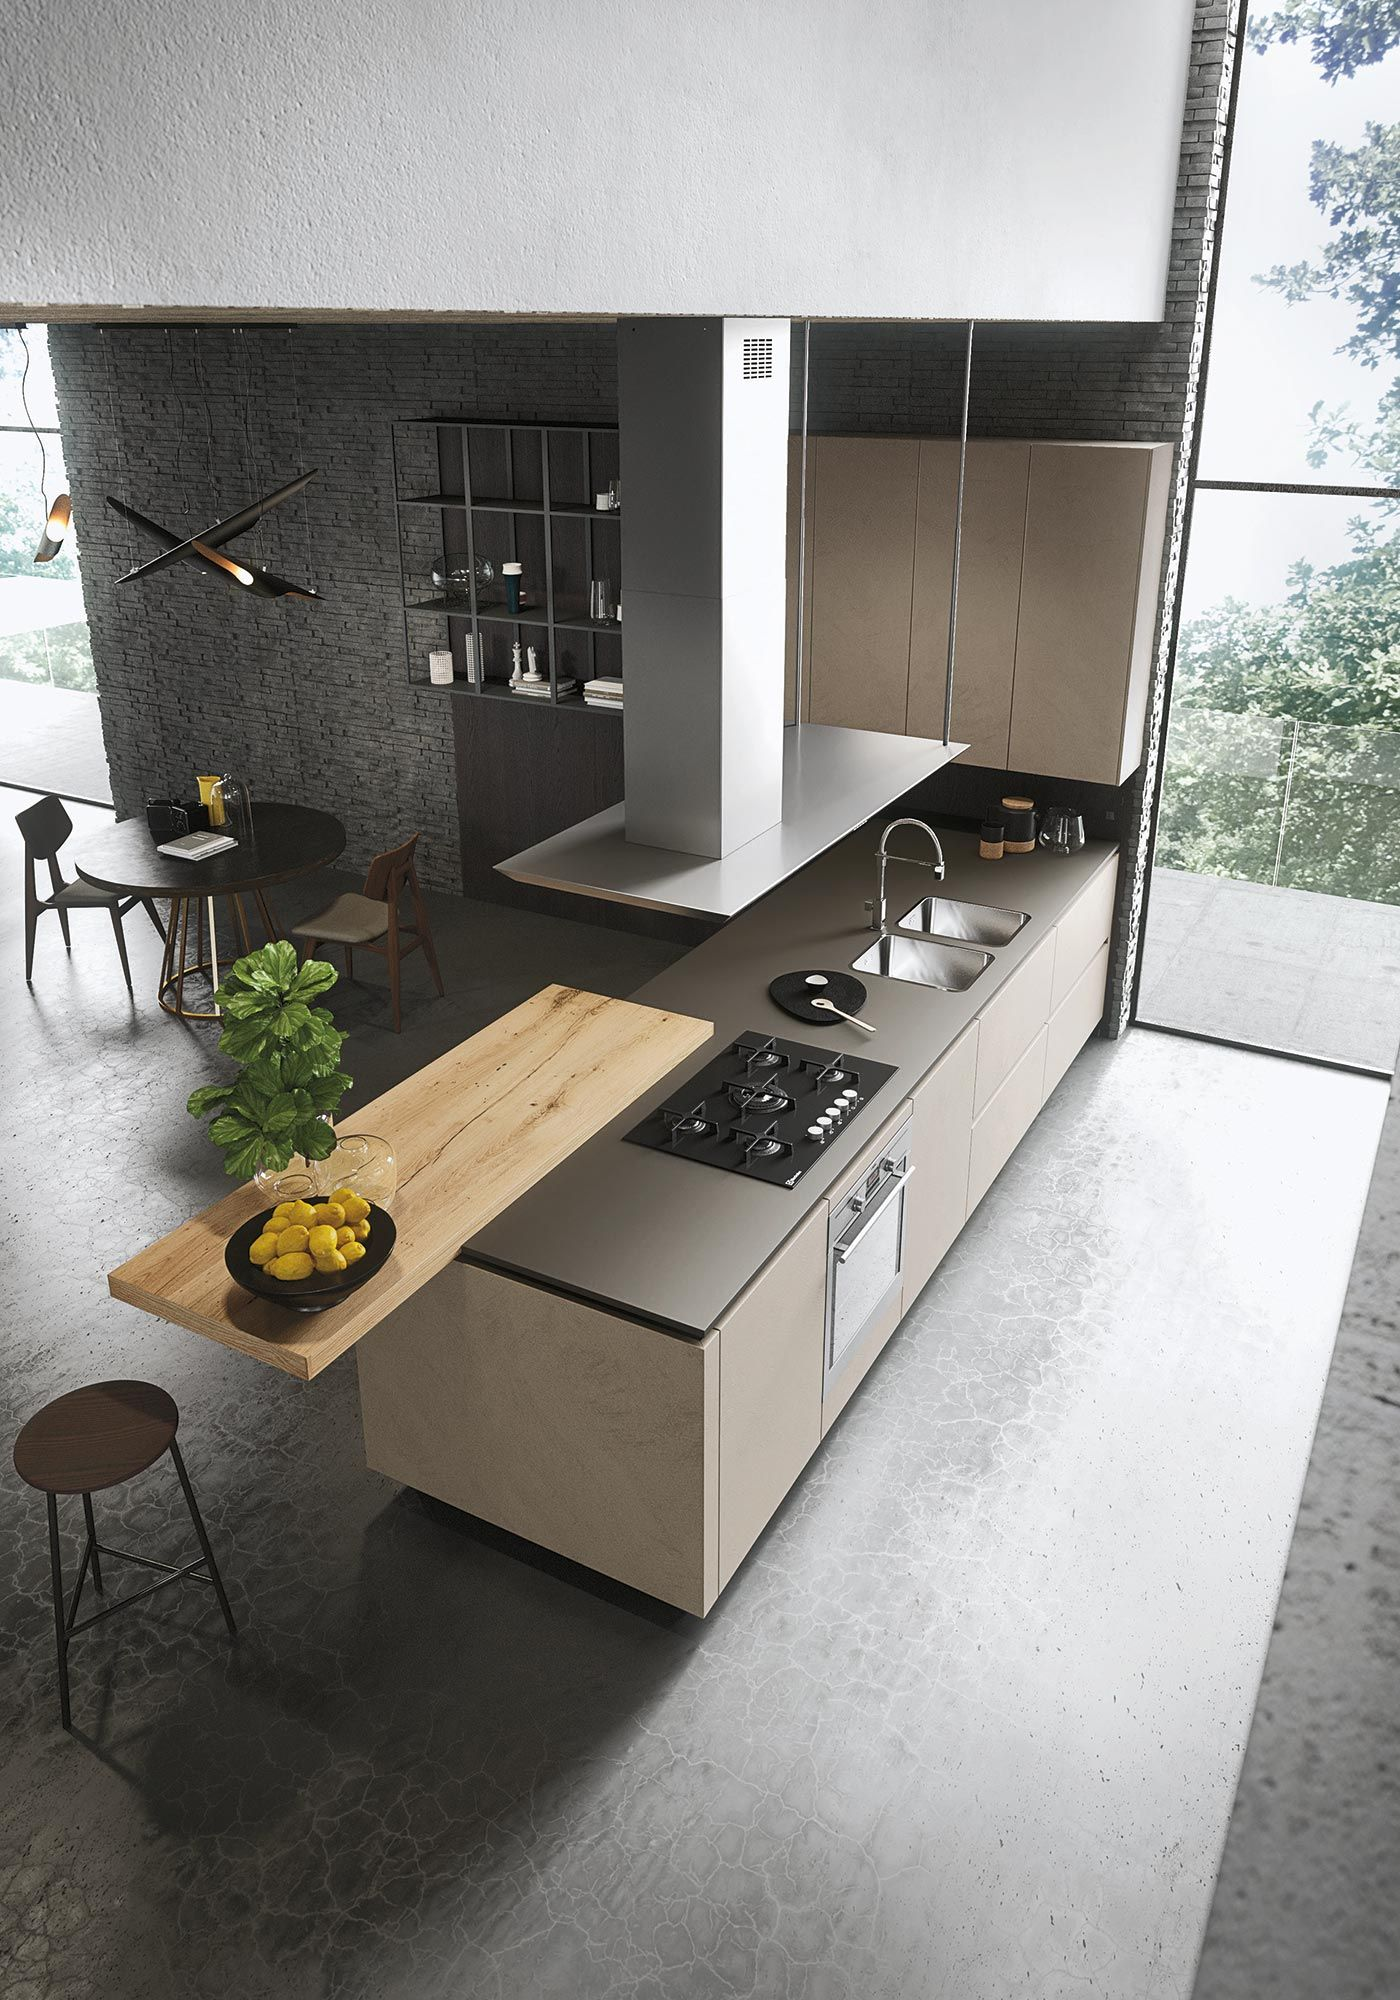 通過斯納伊代羅設計米歇爾marcon的look木製廚房sistema收藏 Modern Kitchen Design Modern Kitchen Home Decor Kitchen